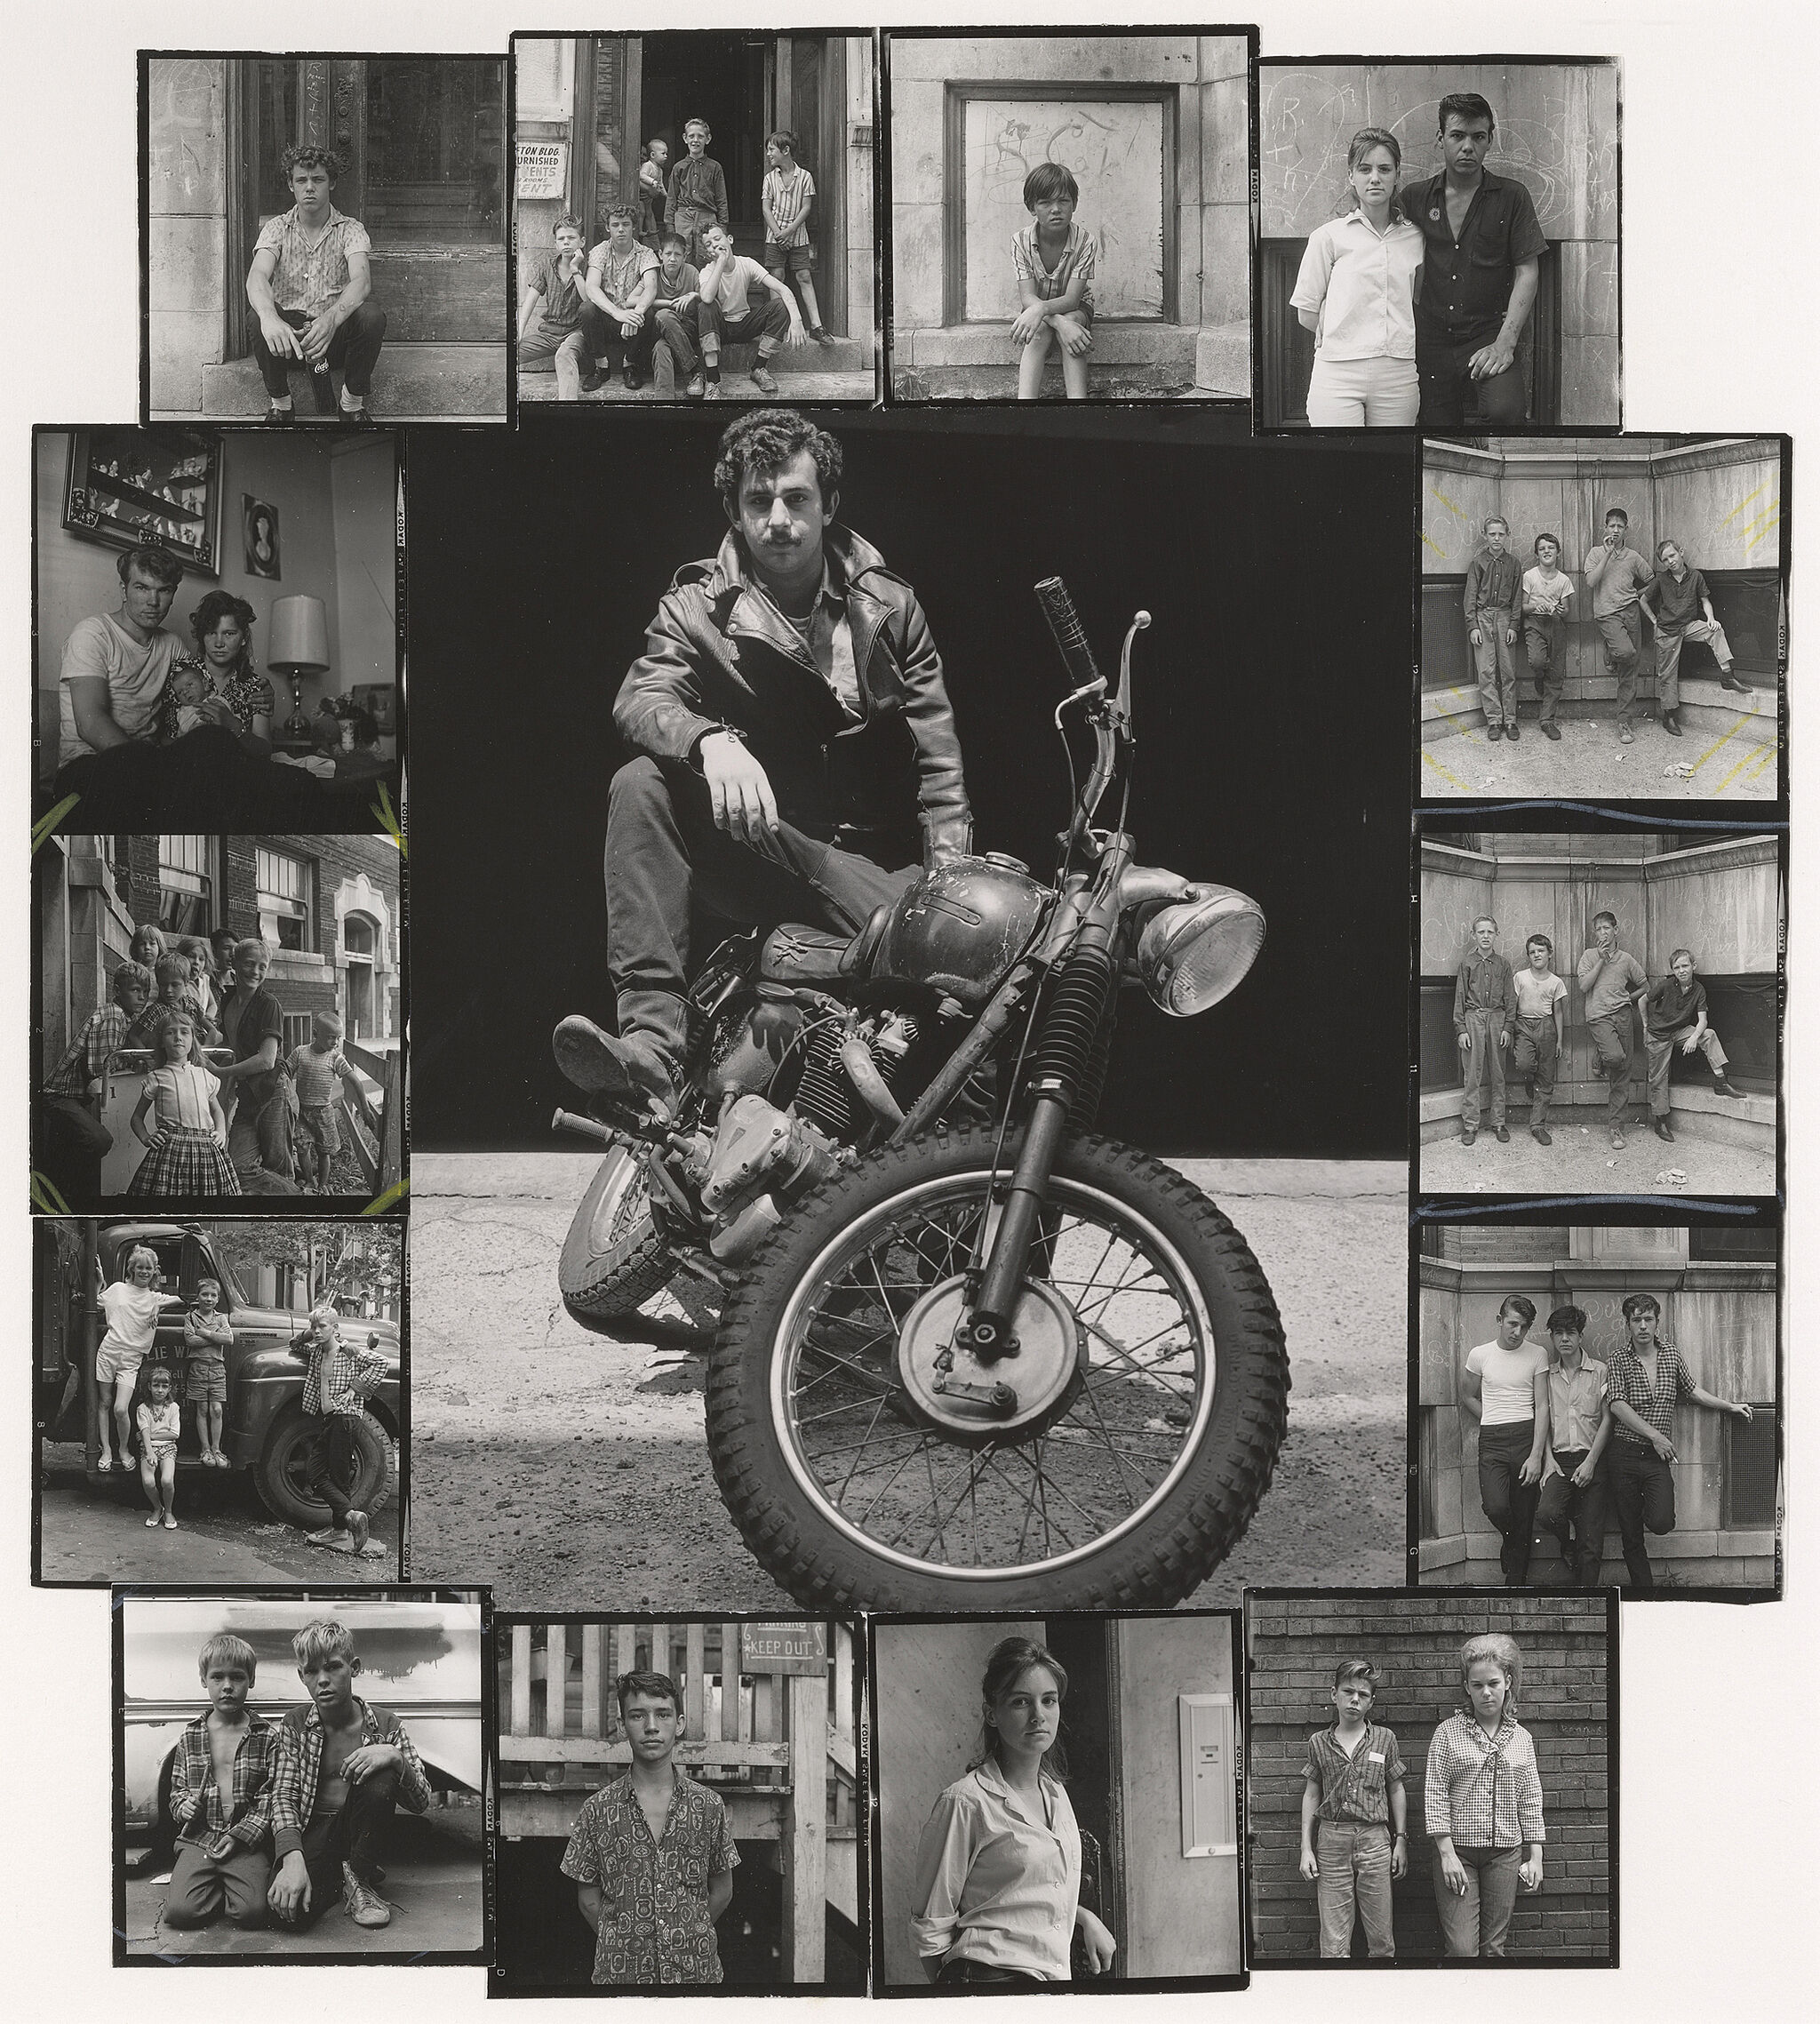 A man sits on a motorcycle with several other photos of people surrounding him.